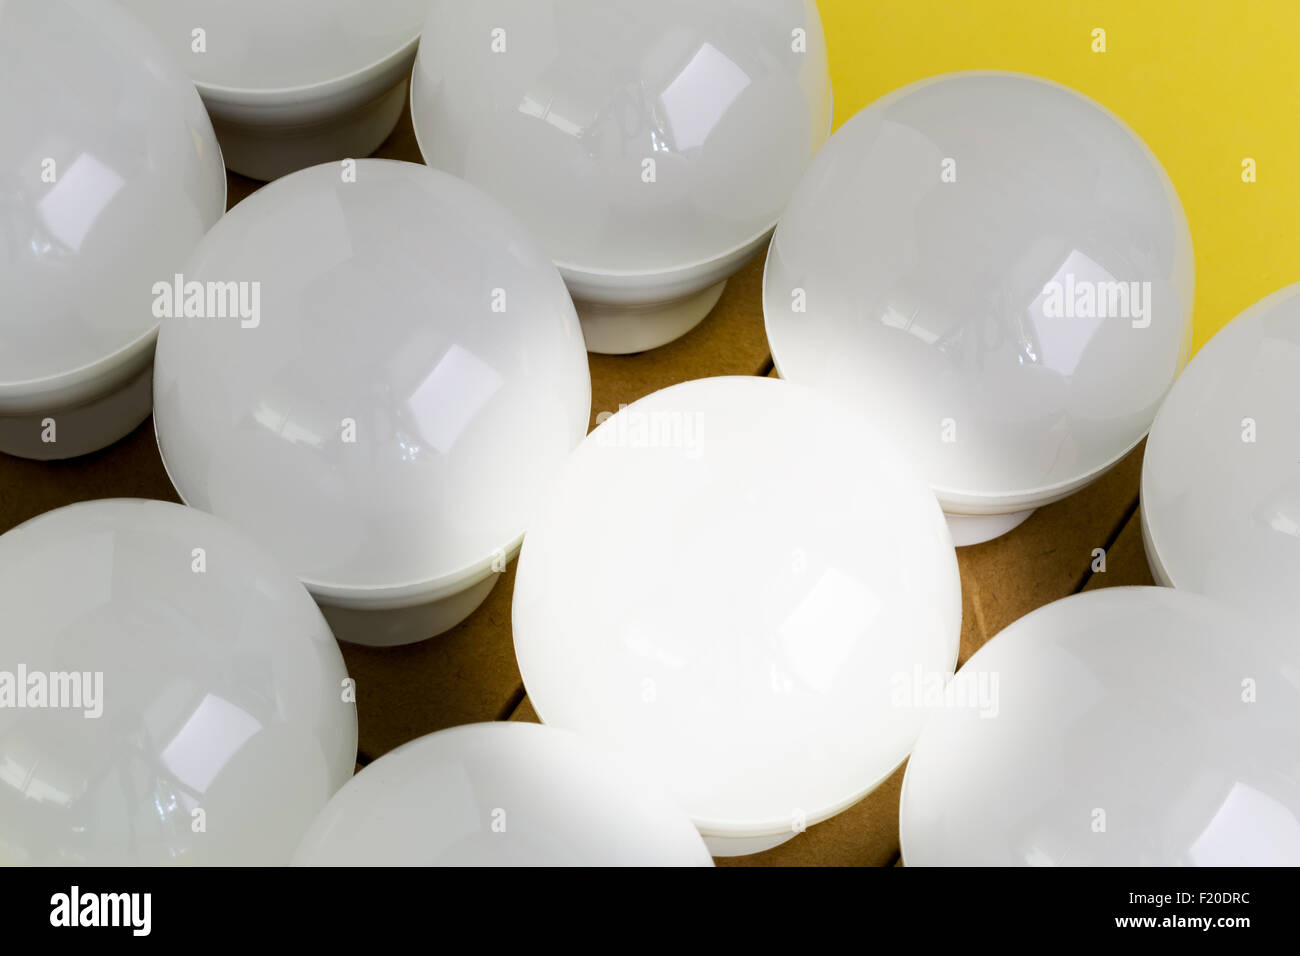 Light bulb illustrating business concept or idea. - Stock Image